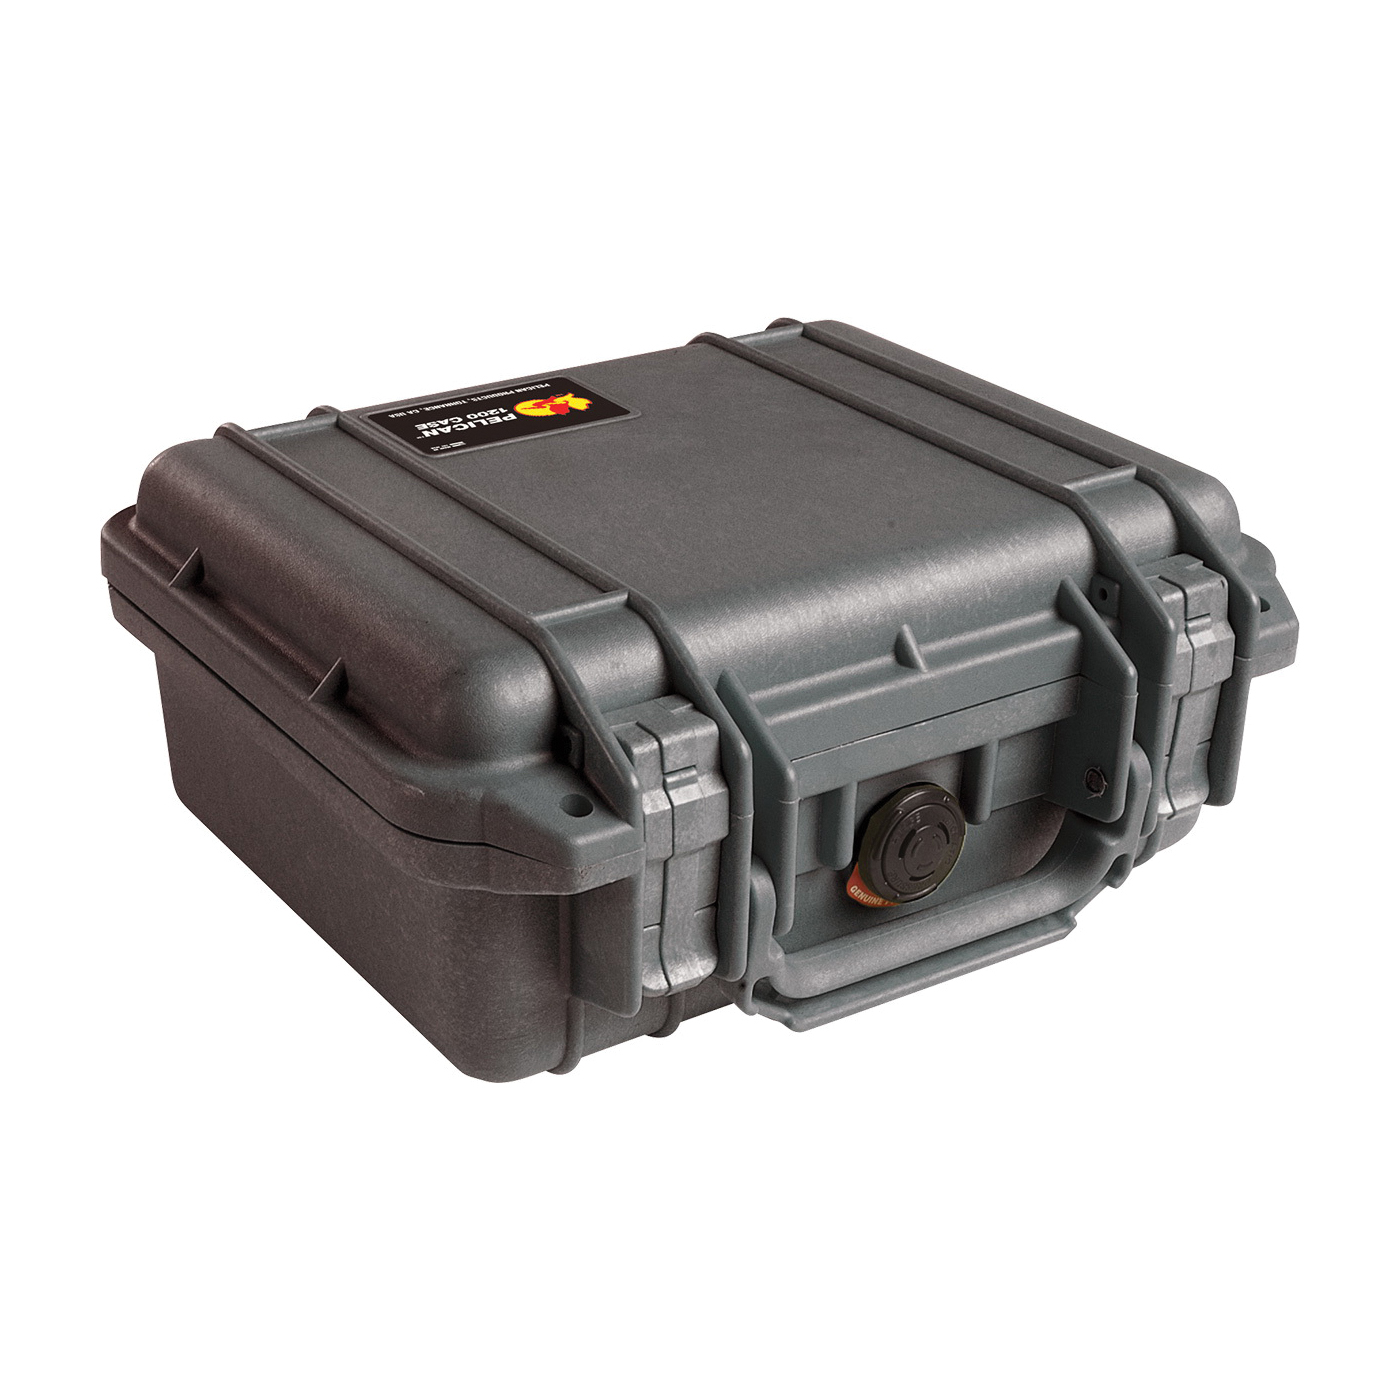 Pelican™ PROTECTOR CASE™ 1120-000-110 Small Protective Case With Lid Liner and Foam, 7.46 in L x 4.96 in W x 3.33 in H, 0.01 cu-ft, Polypropylene